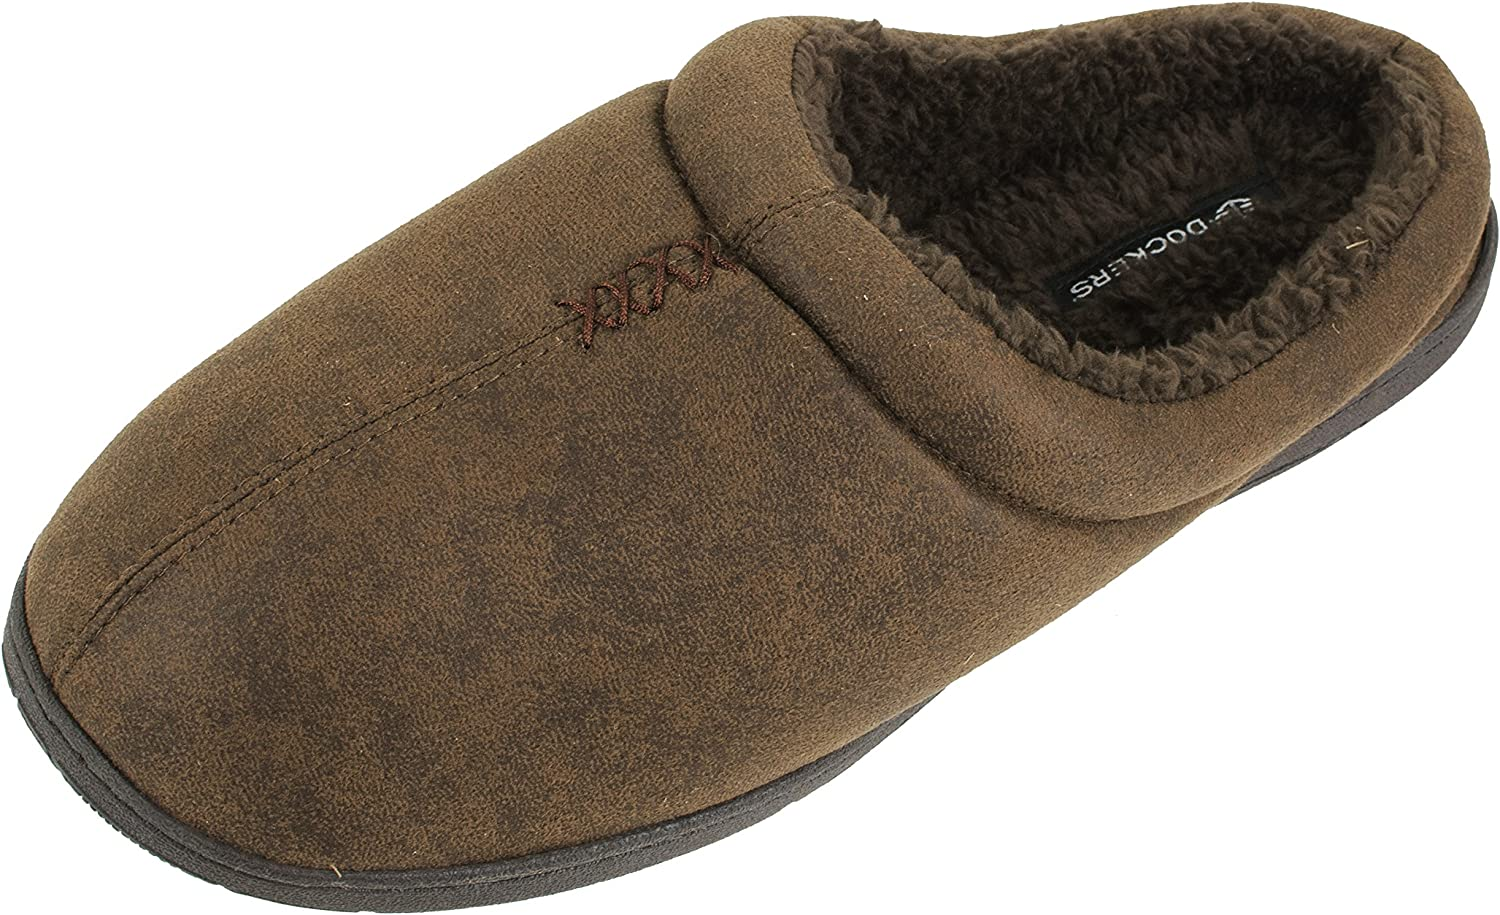 Dockers Men's Christopher Classic Casual Roll Collar Clog Slippers, Size 8 to 13